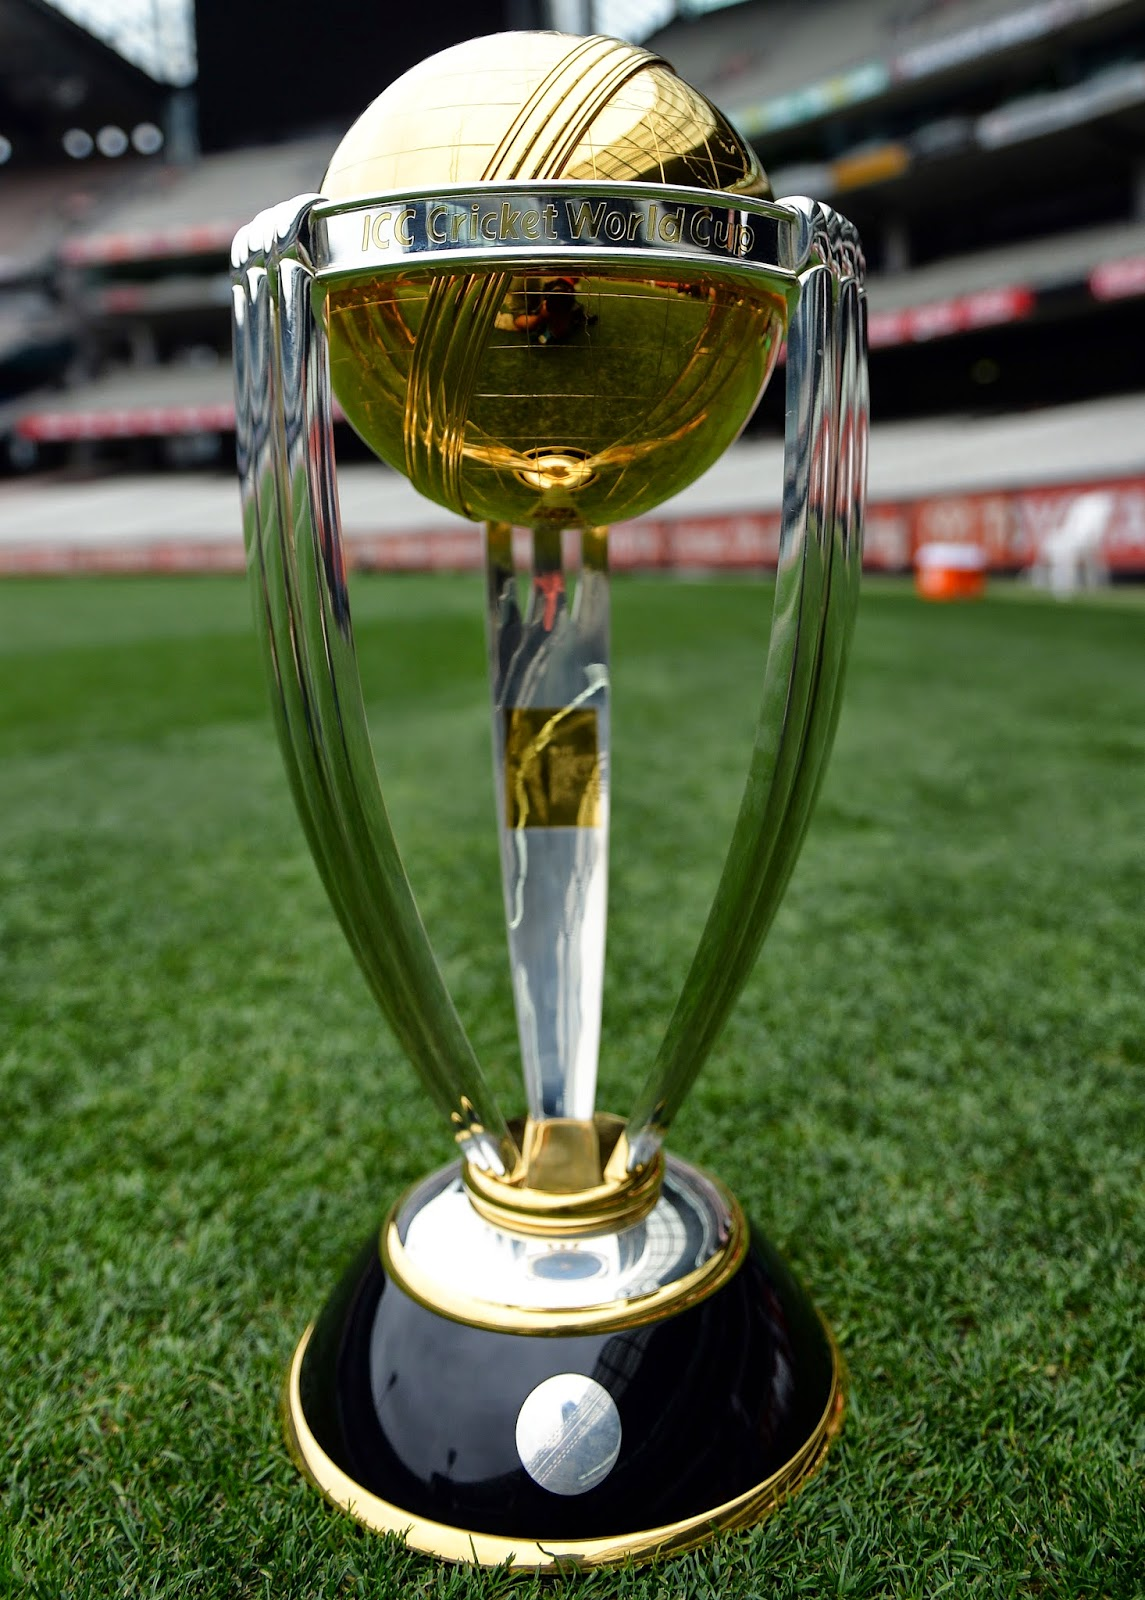 Cricket World Cup 2015 Icc World Cup 2015 Contest